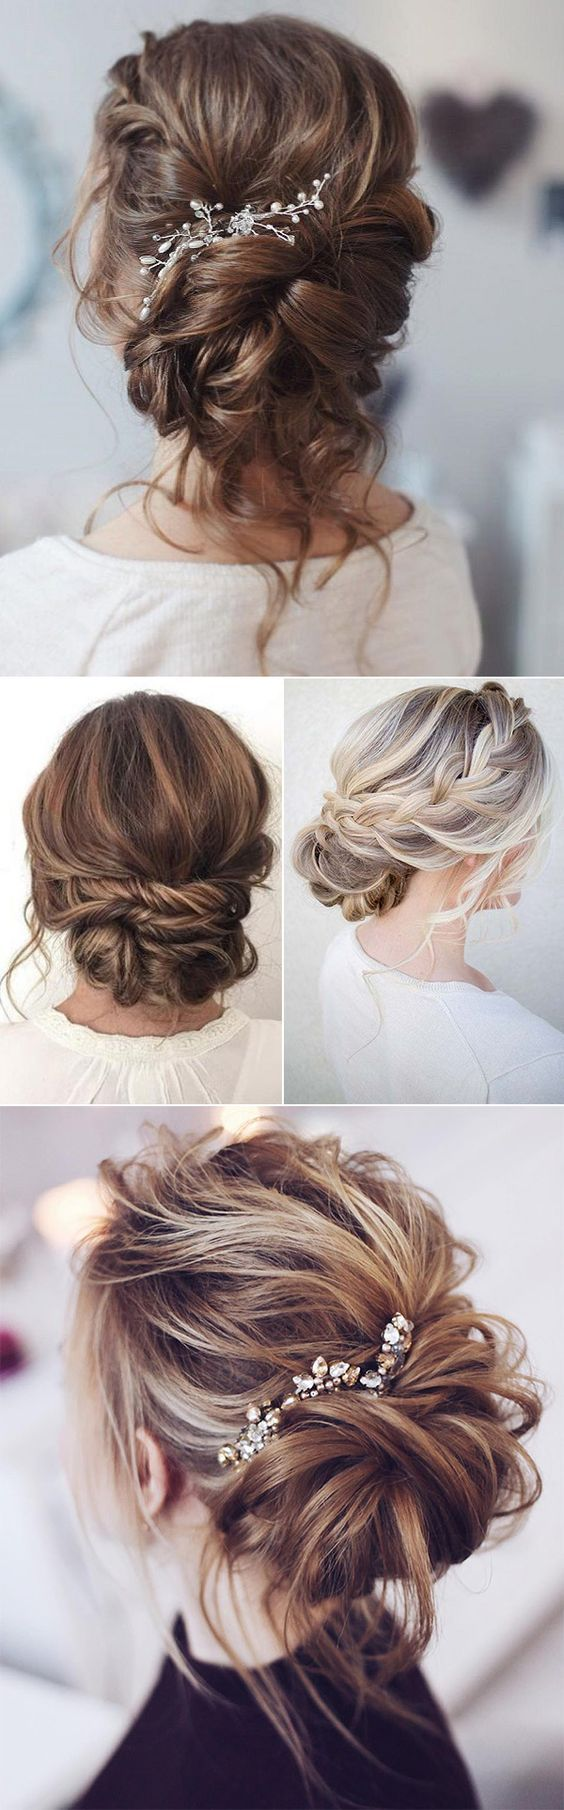 beautiful loose bridal updo hairstyle ideas